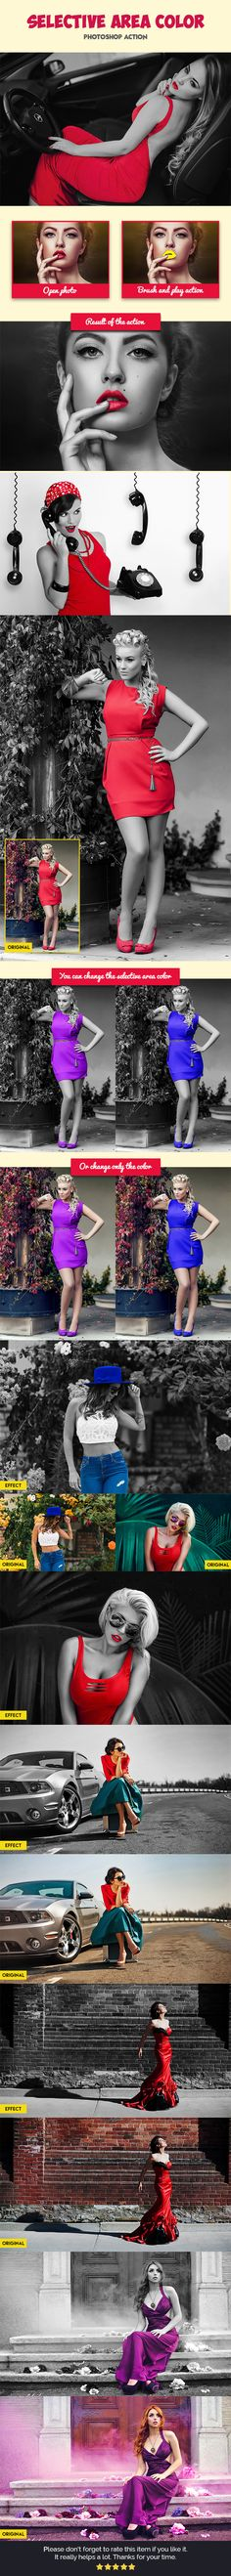 Selective Area Color V2 - #Photo Effects #Actions Download here:  https://graphicriver.net/item/selective-area-color-v2/19592354?ref=alena994